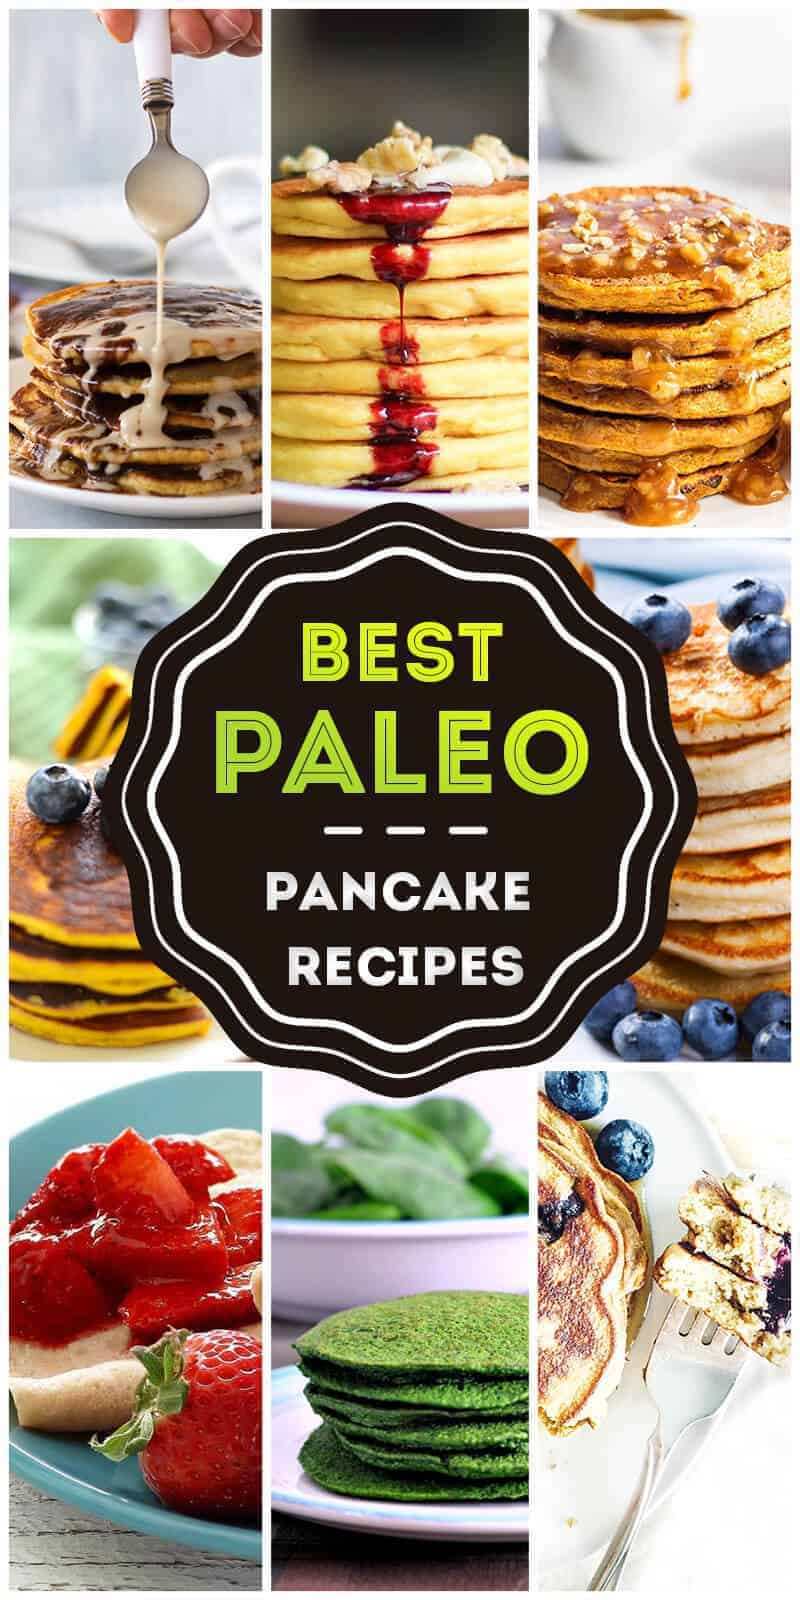 Top Paleo Pancake Recipes